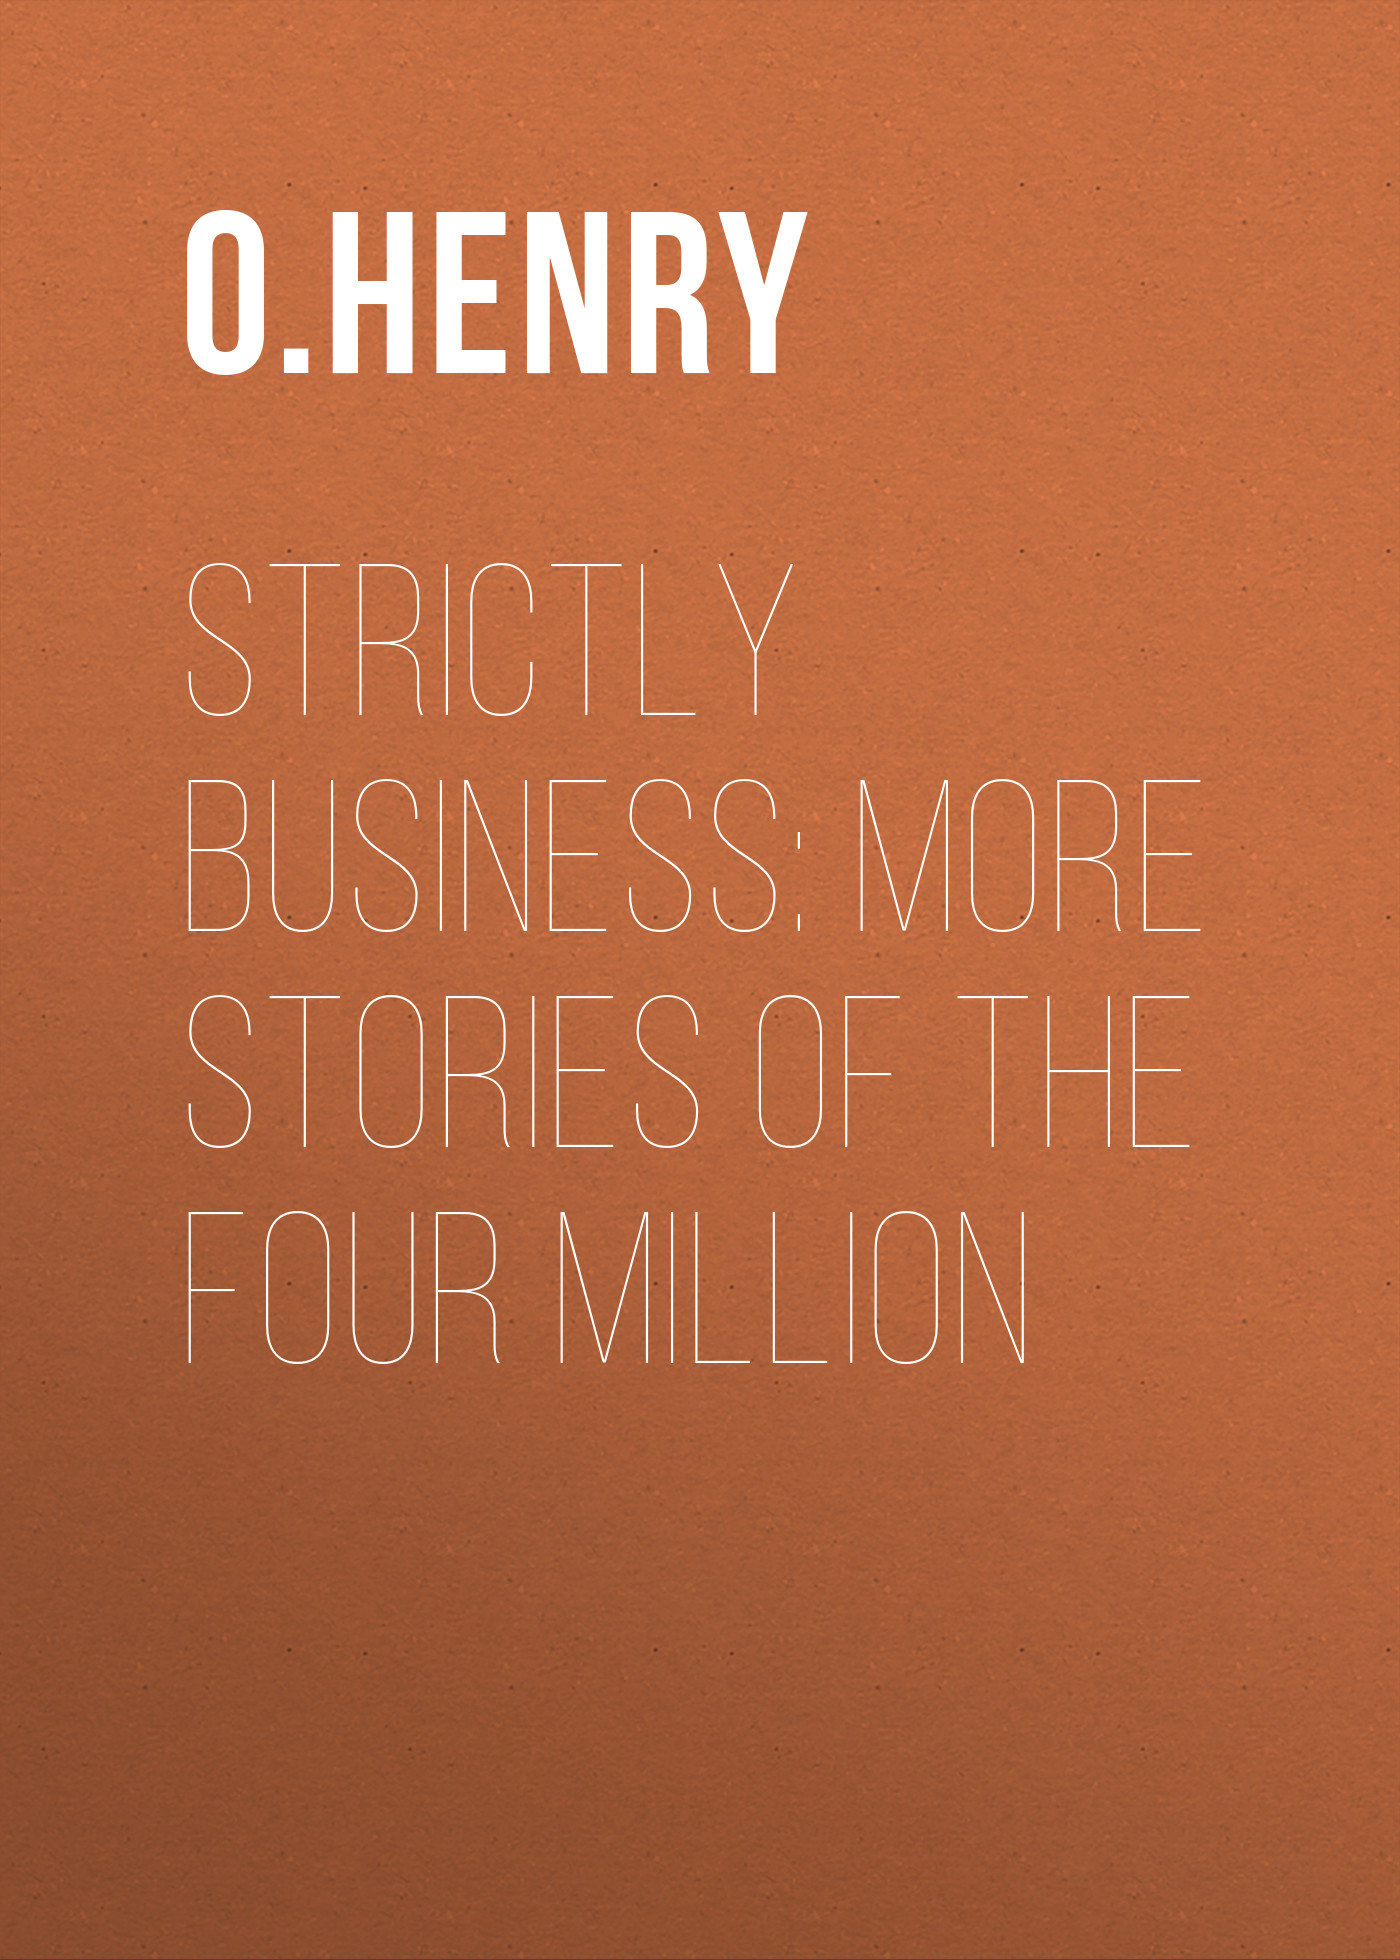 strictly business more stories of the four million